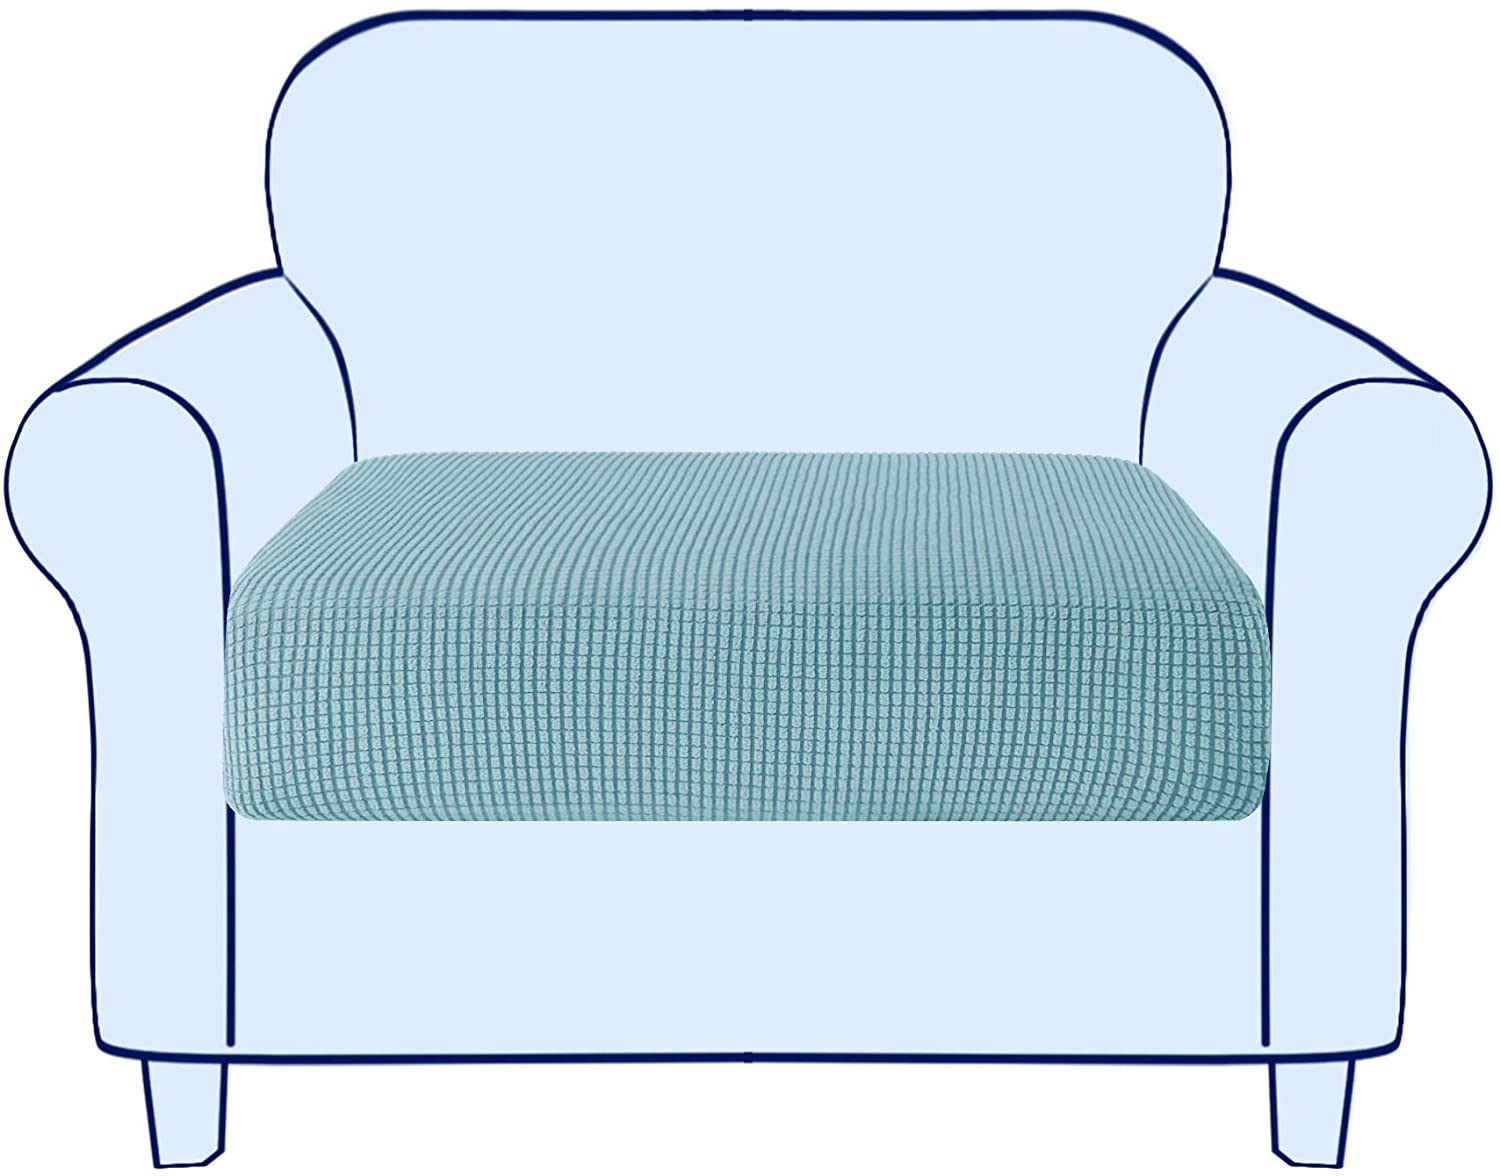 subrtex Couch Sofa Cushion Slipcover Seat Slip Covers Loveseat Stretch Durable Chair Sofa Protector Cushion Spandex Elastic Furniture Protector for Settee Sofa Seat in LivingRoom (Small,Steel Blue)